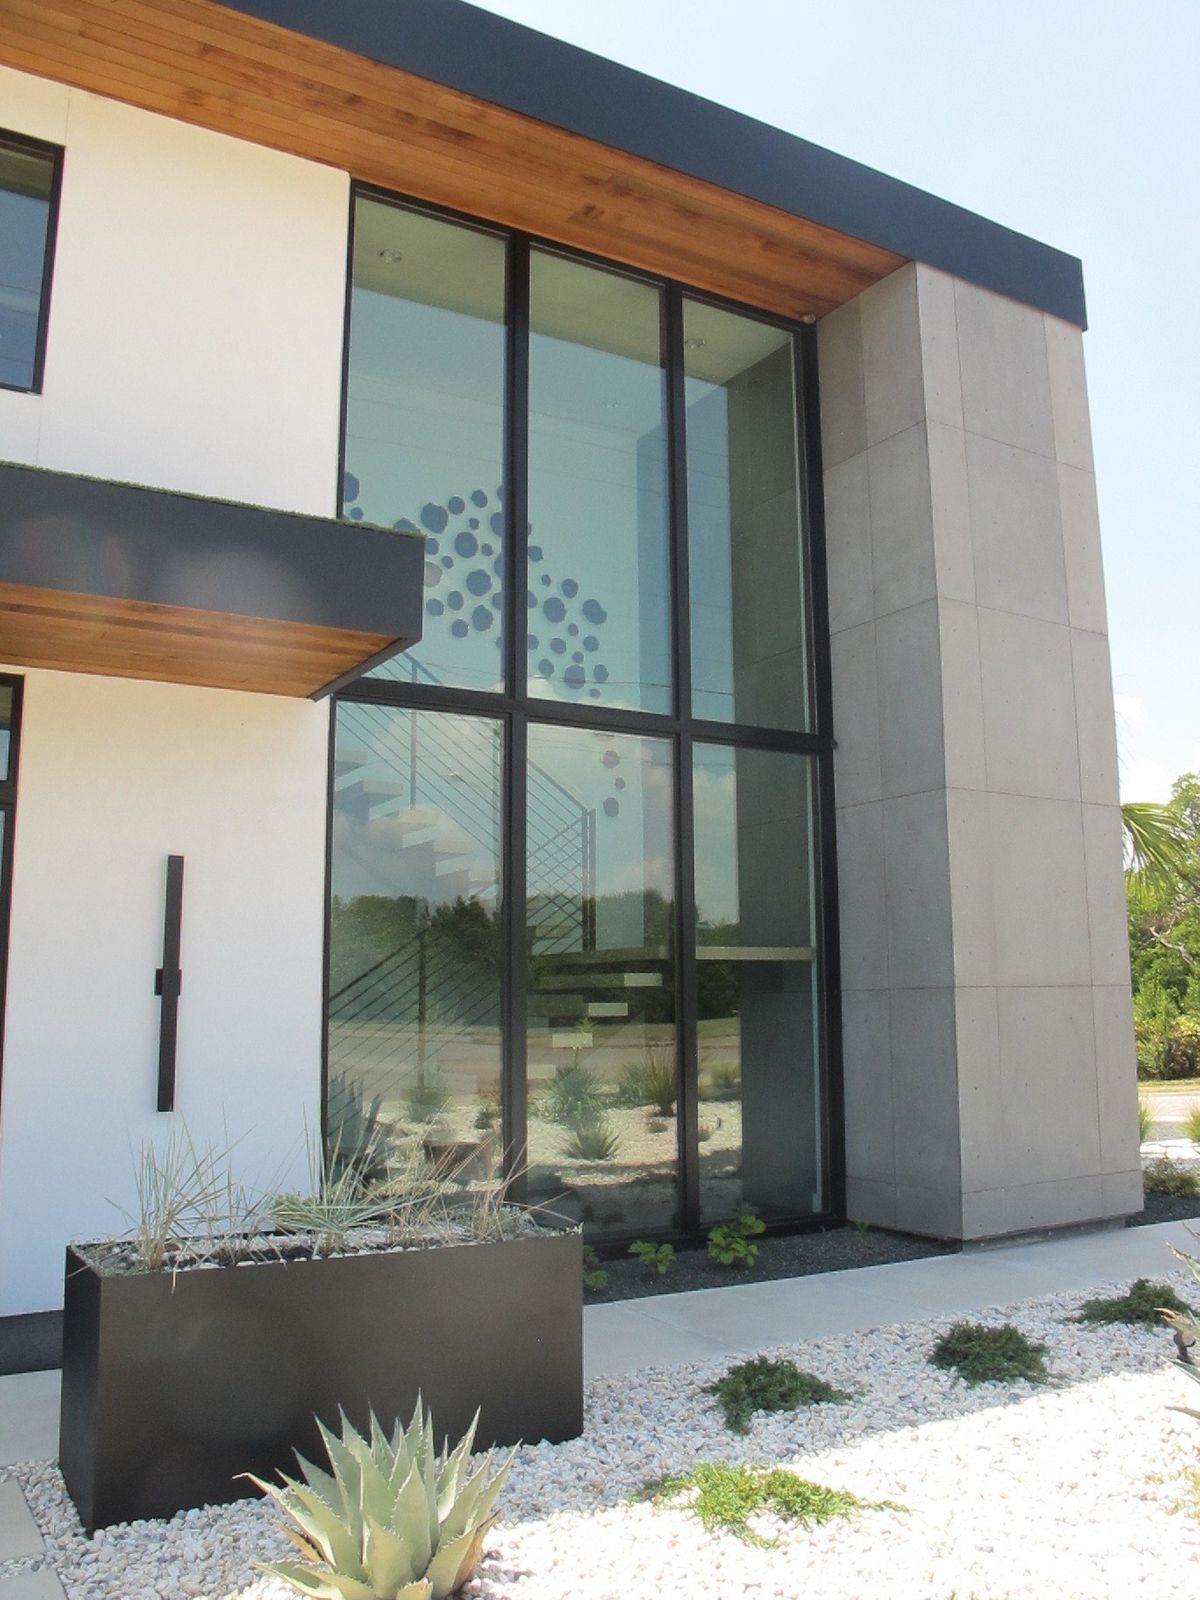 Ella Contemporary Modern House Photo Video Shoot Location Dallas 22.jpg